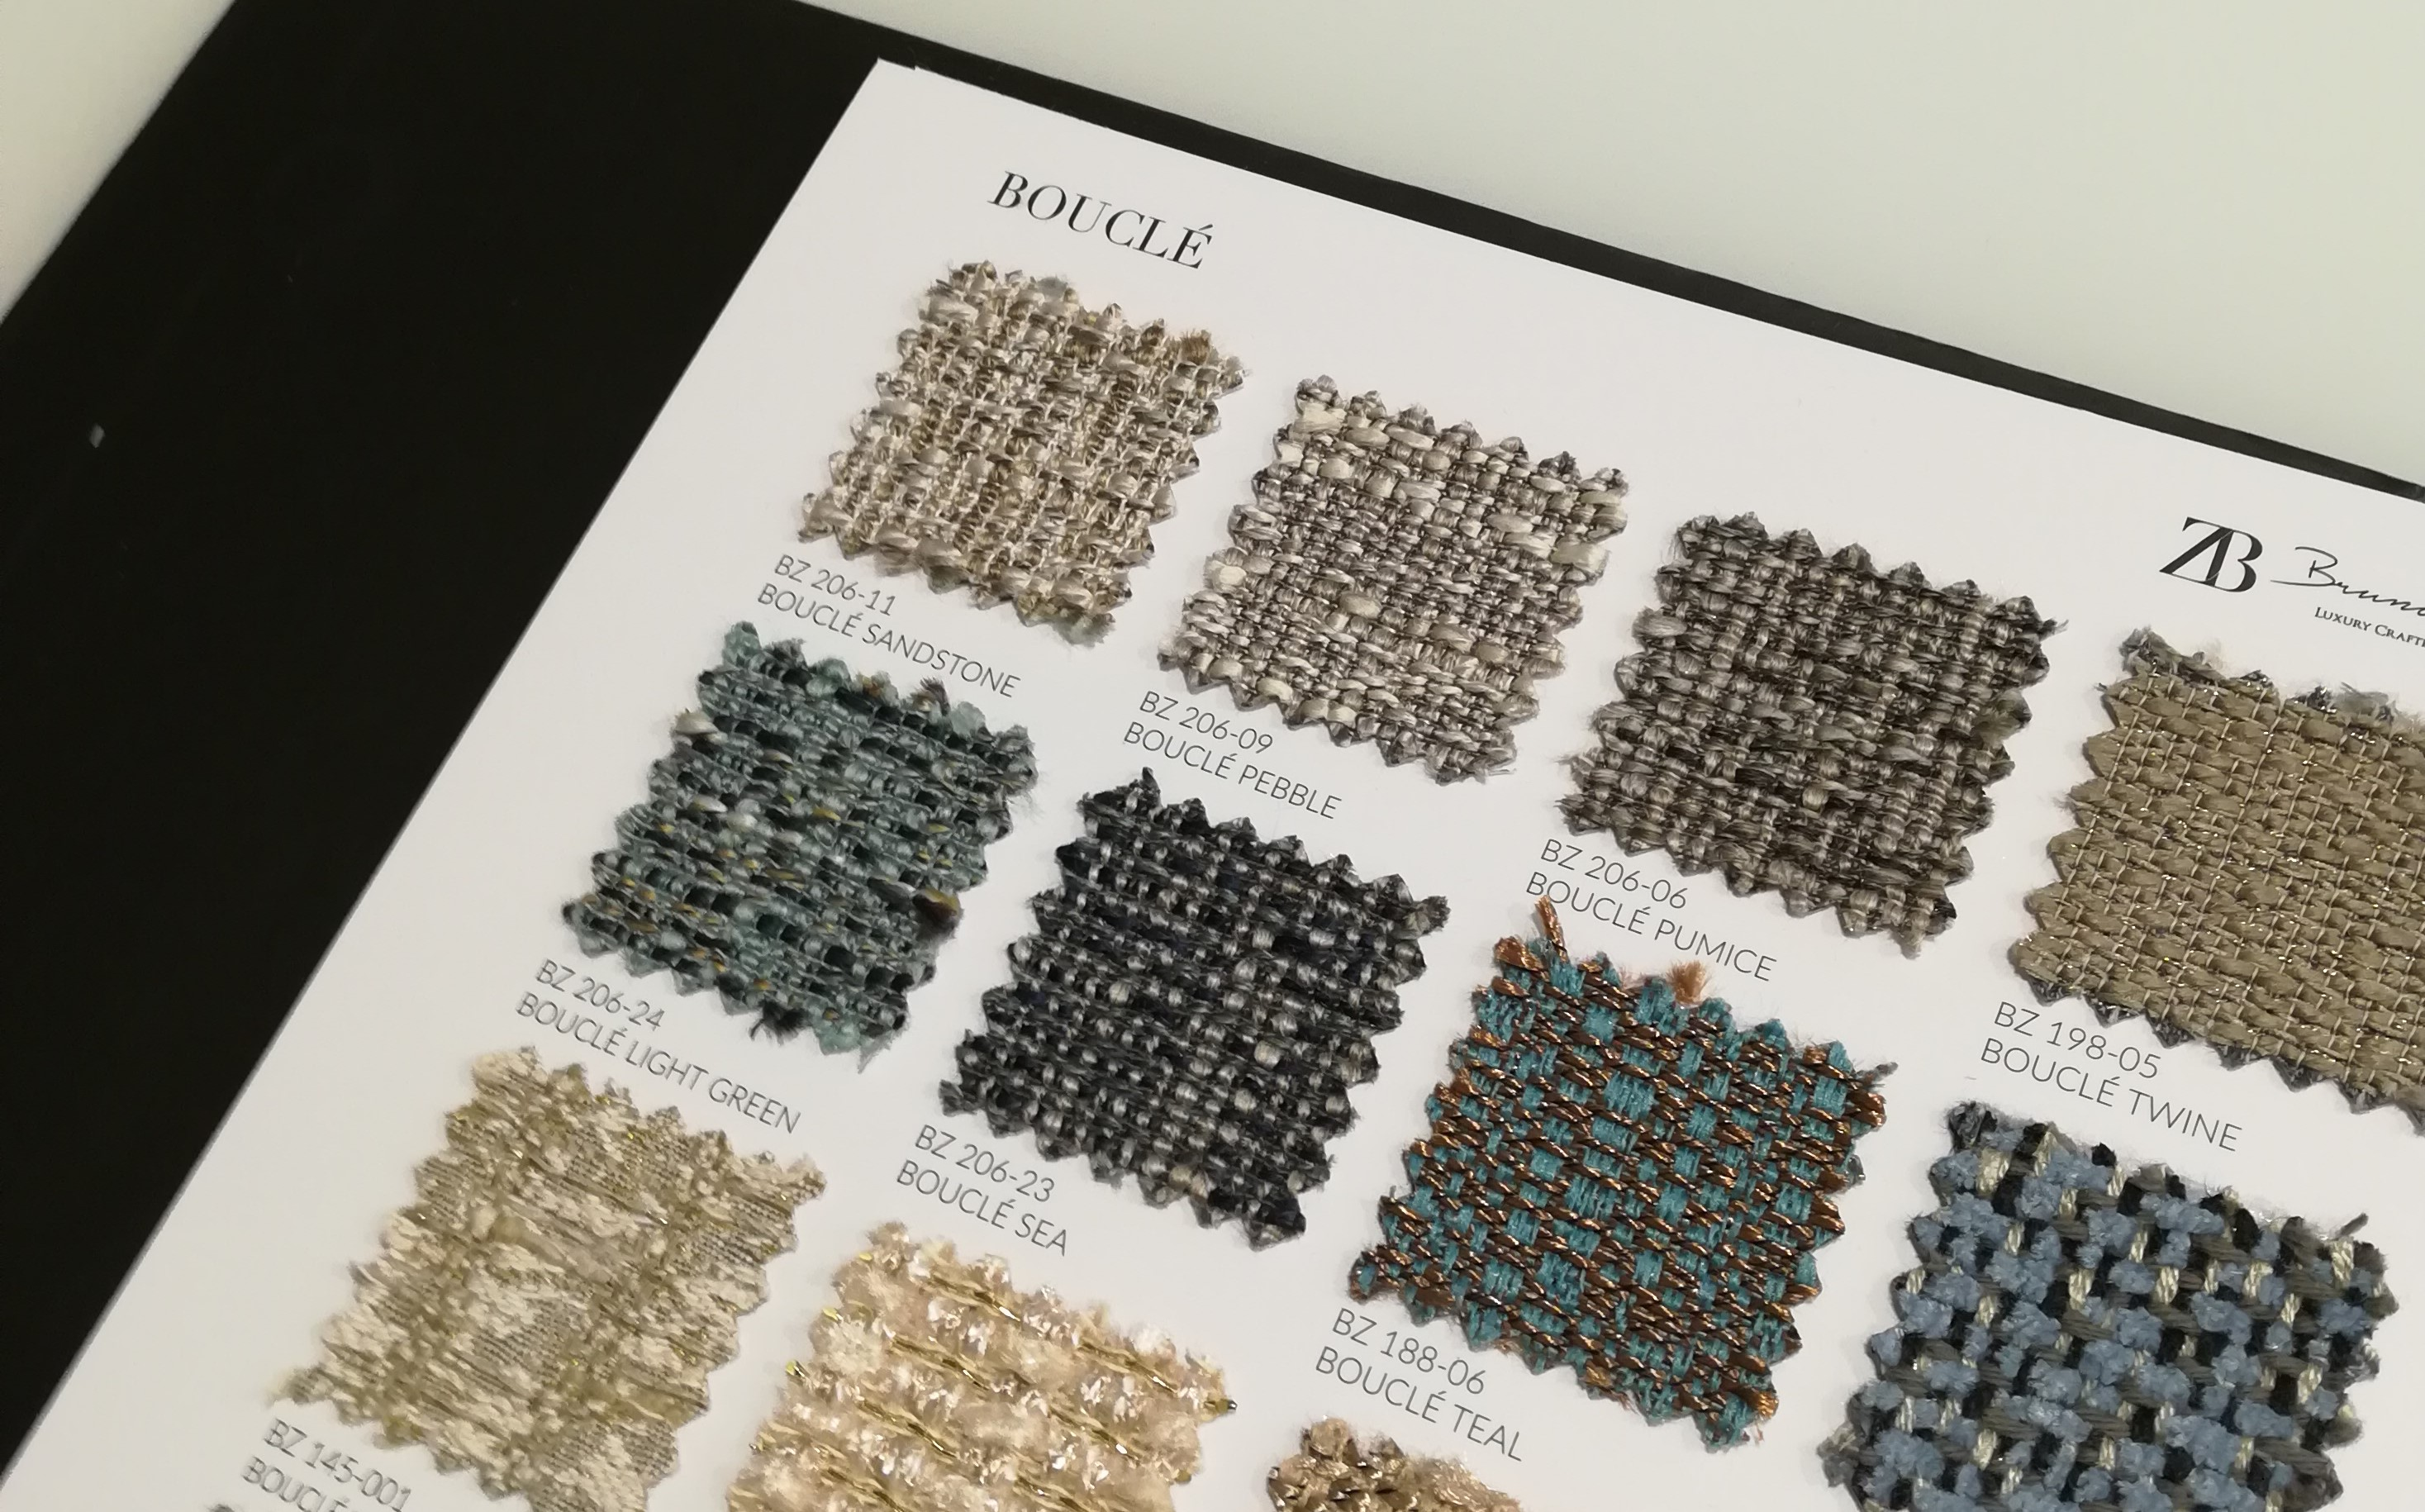 To choose the right materials, you need to see and touch them